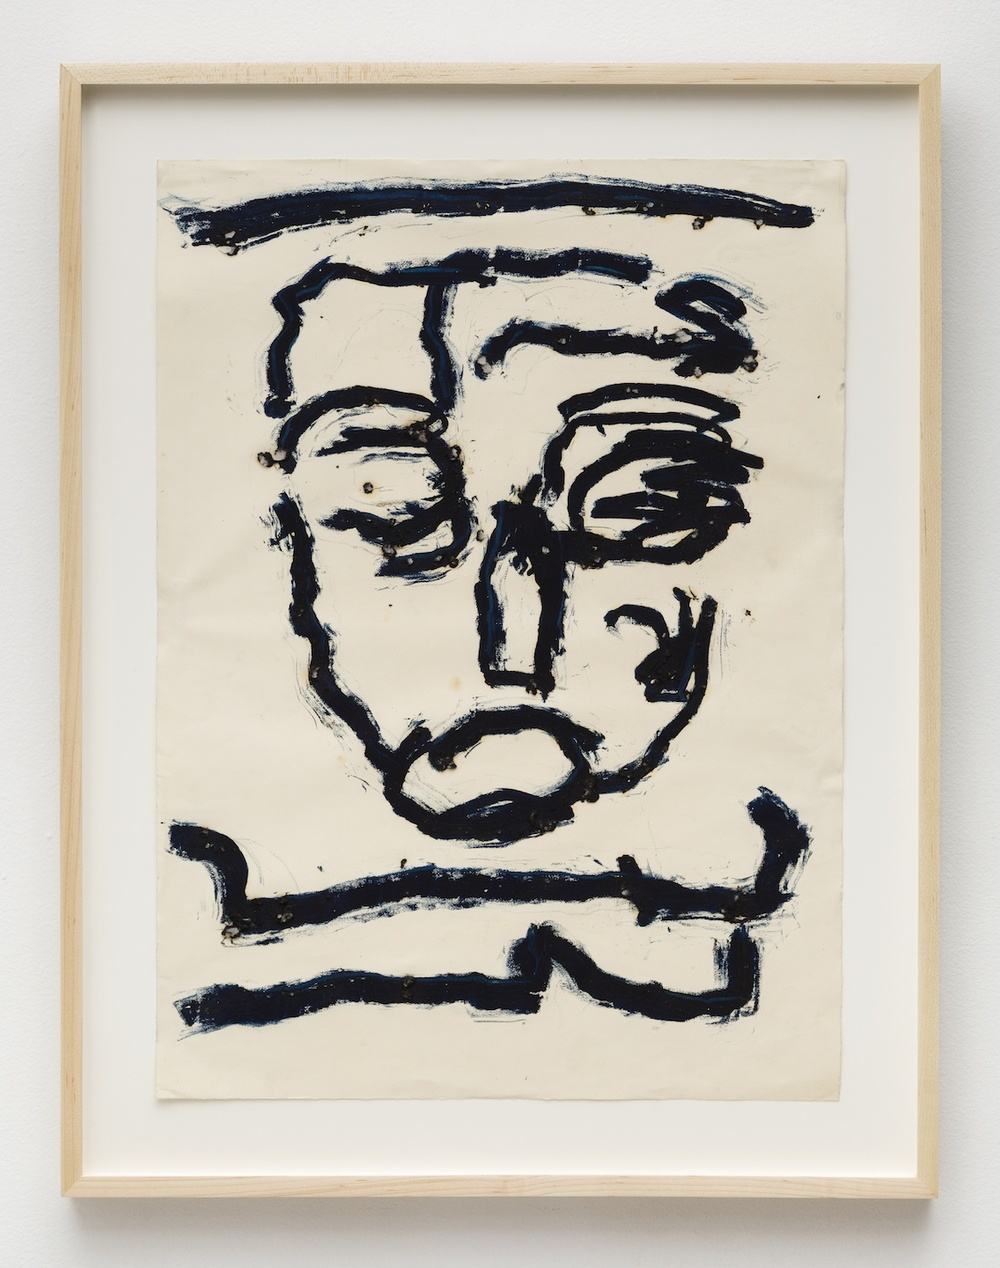 Dan Asher,  Untitled , 1980s, oil stick on paper, 26 x 19 in.